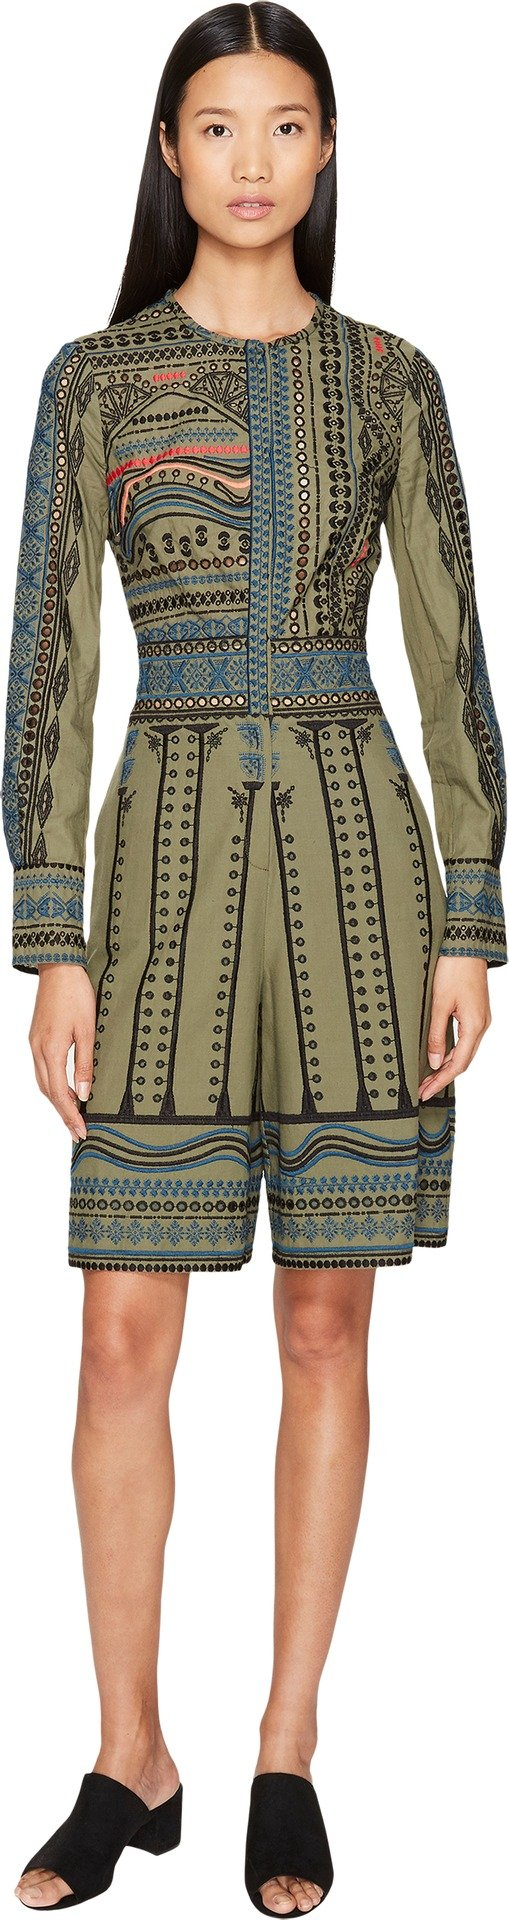 YIGAL AZROUËL Women's Tribal Embroidered Cotton Romper Army Multi 8